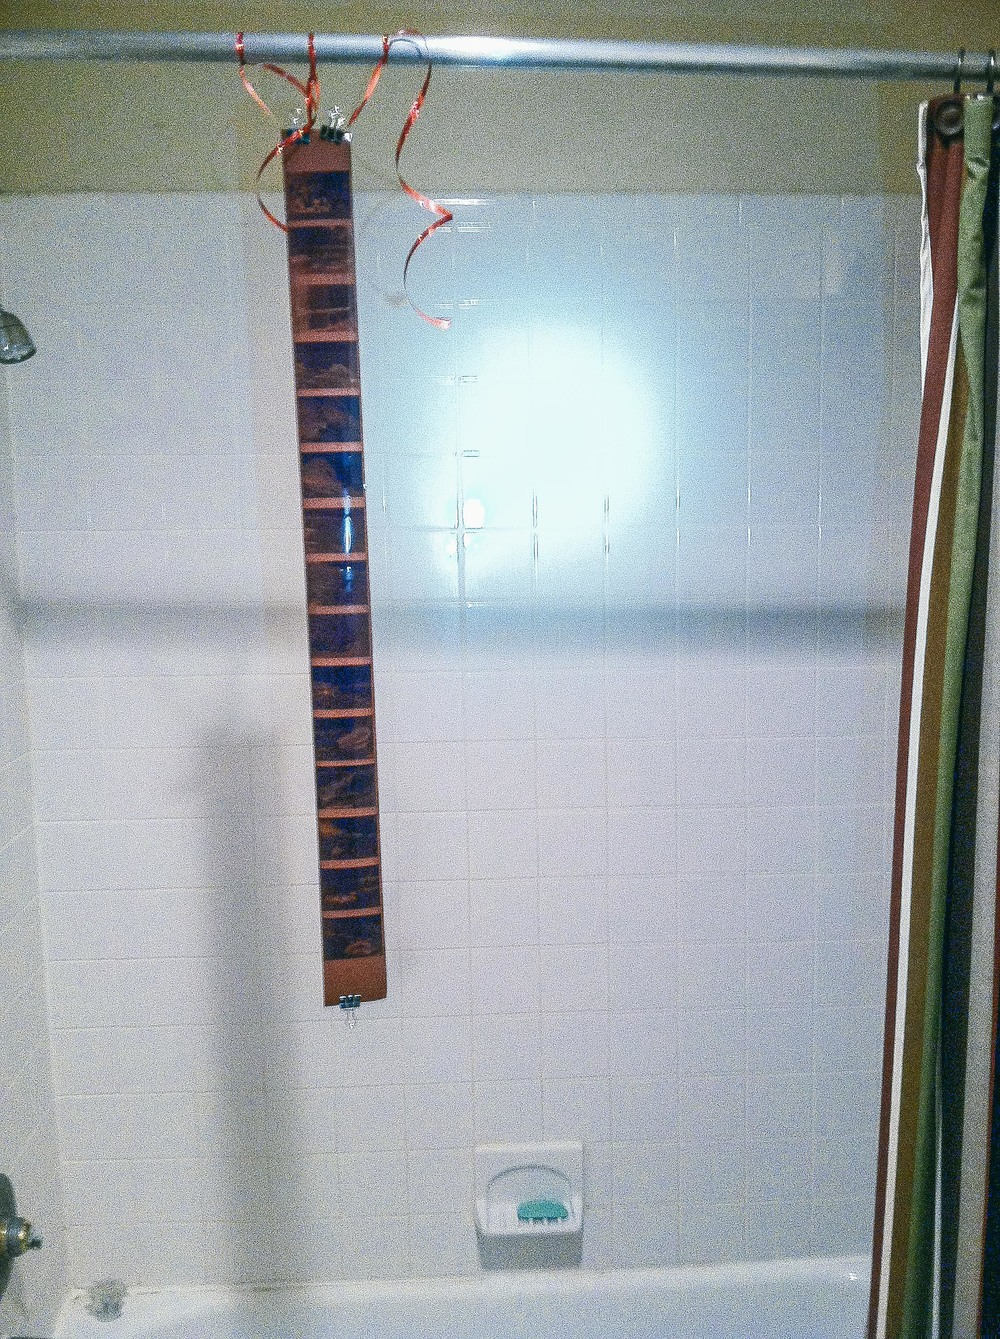 Negatives! Hanging in the shower. I should really come up with a less ghetto solution